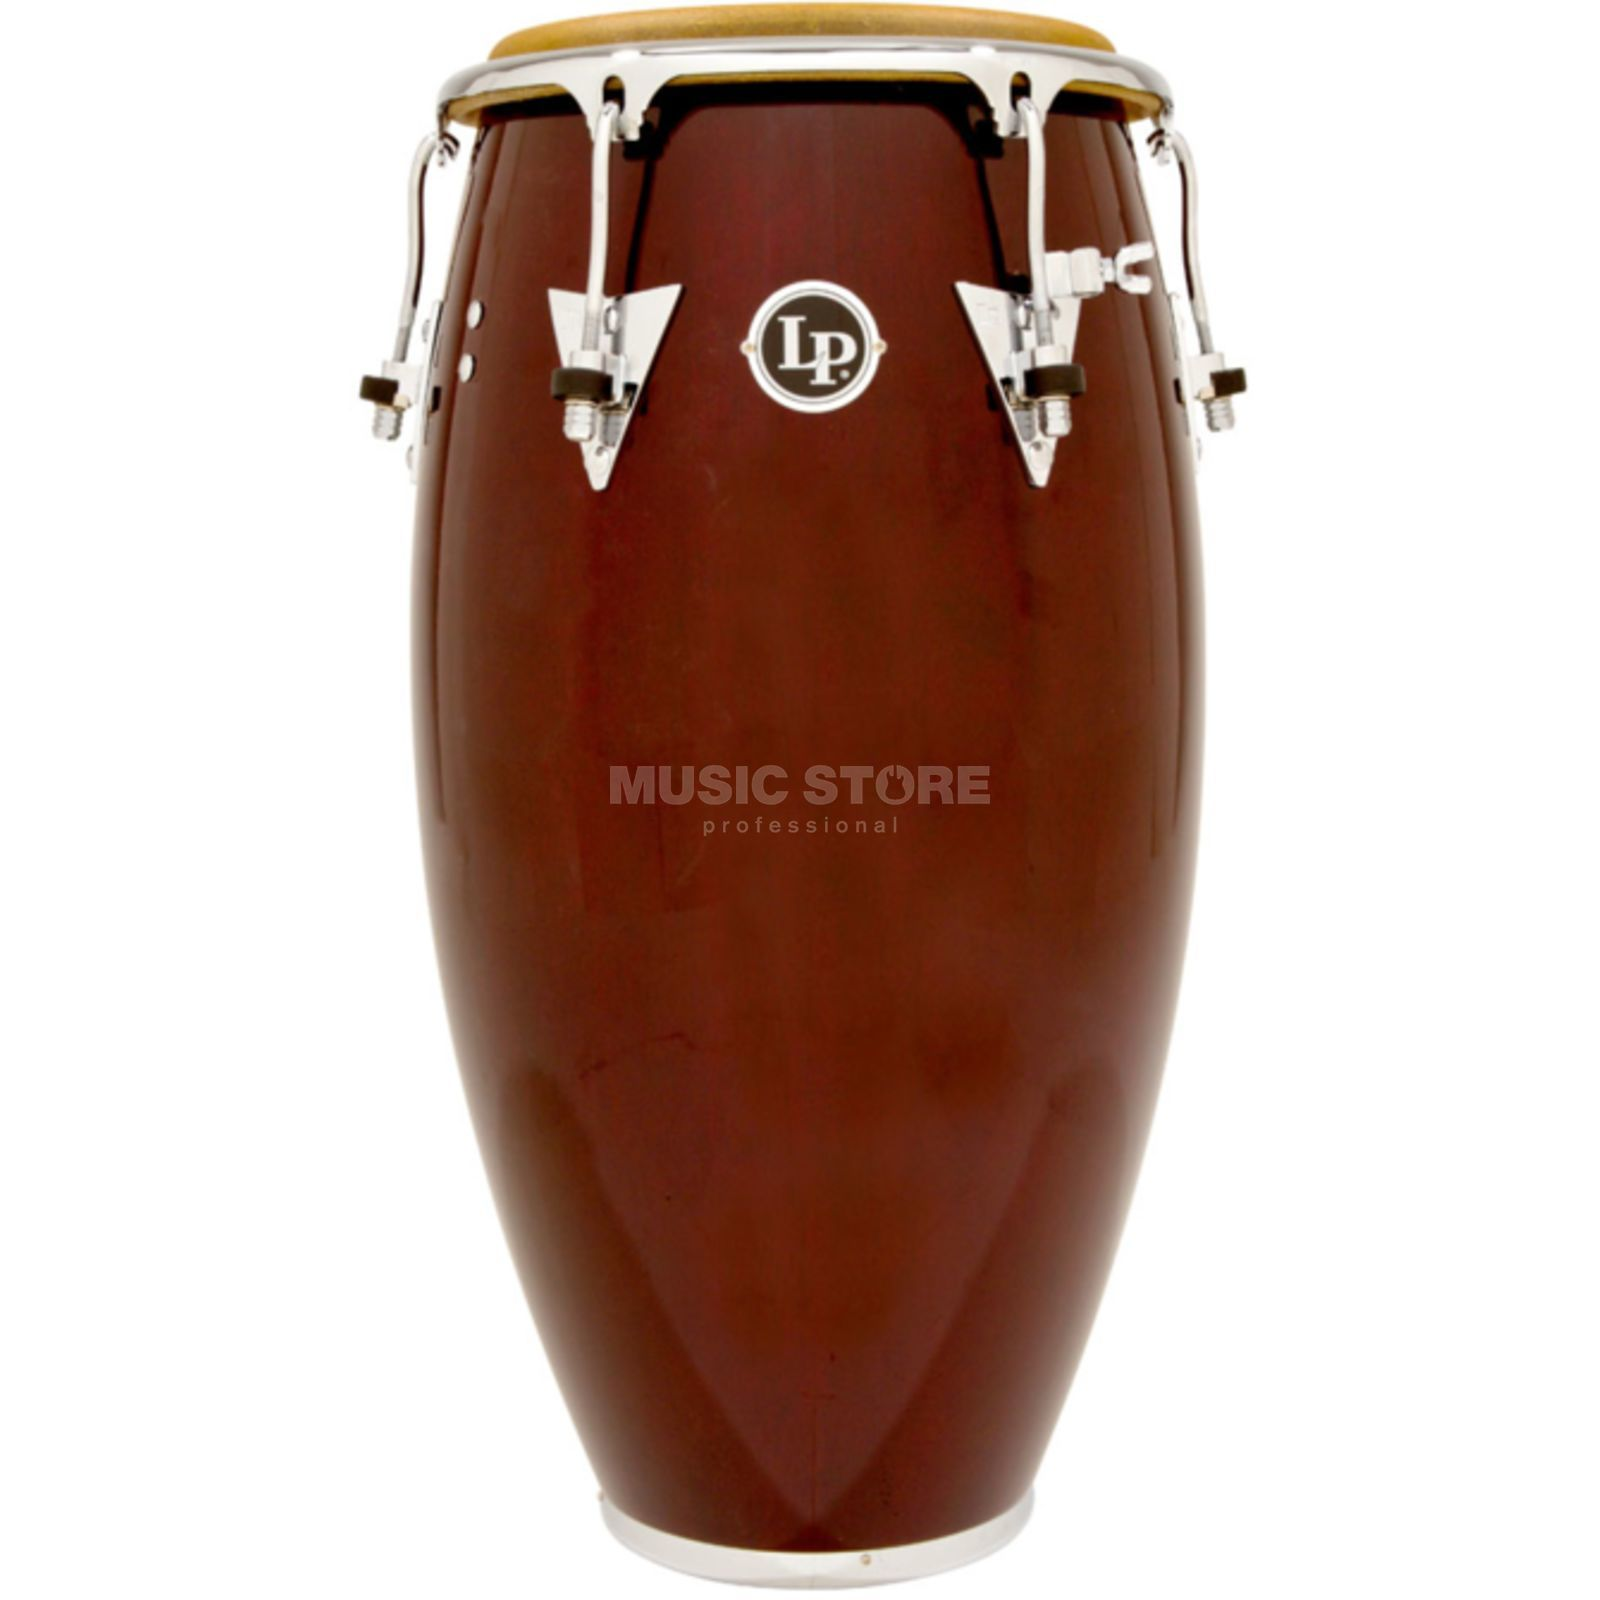 "Latin Percussion Classic Conga LP559X-DW 11 3/4"" Conga, Wine red Produktbild"